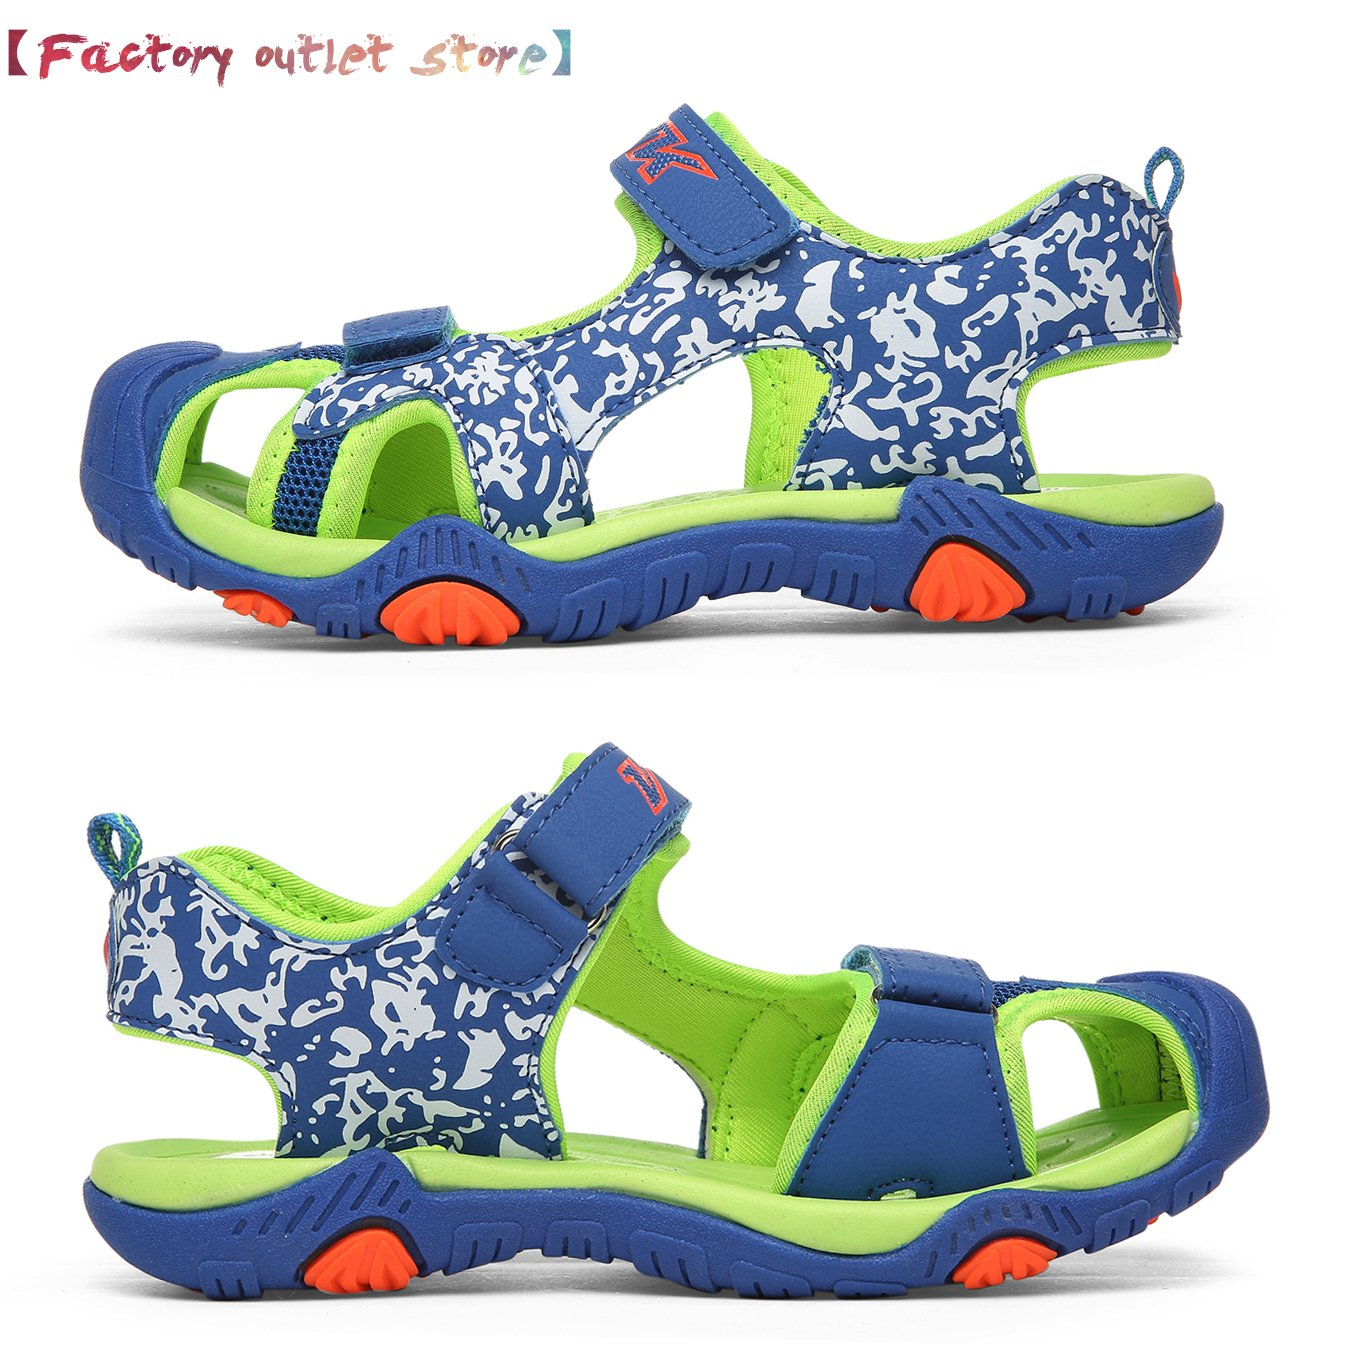 WETIKE Kids Sandals Boys Athletic Sandals Girls Outdoor Water Shoes Summer Beach Closed-Toe Sport Sandals